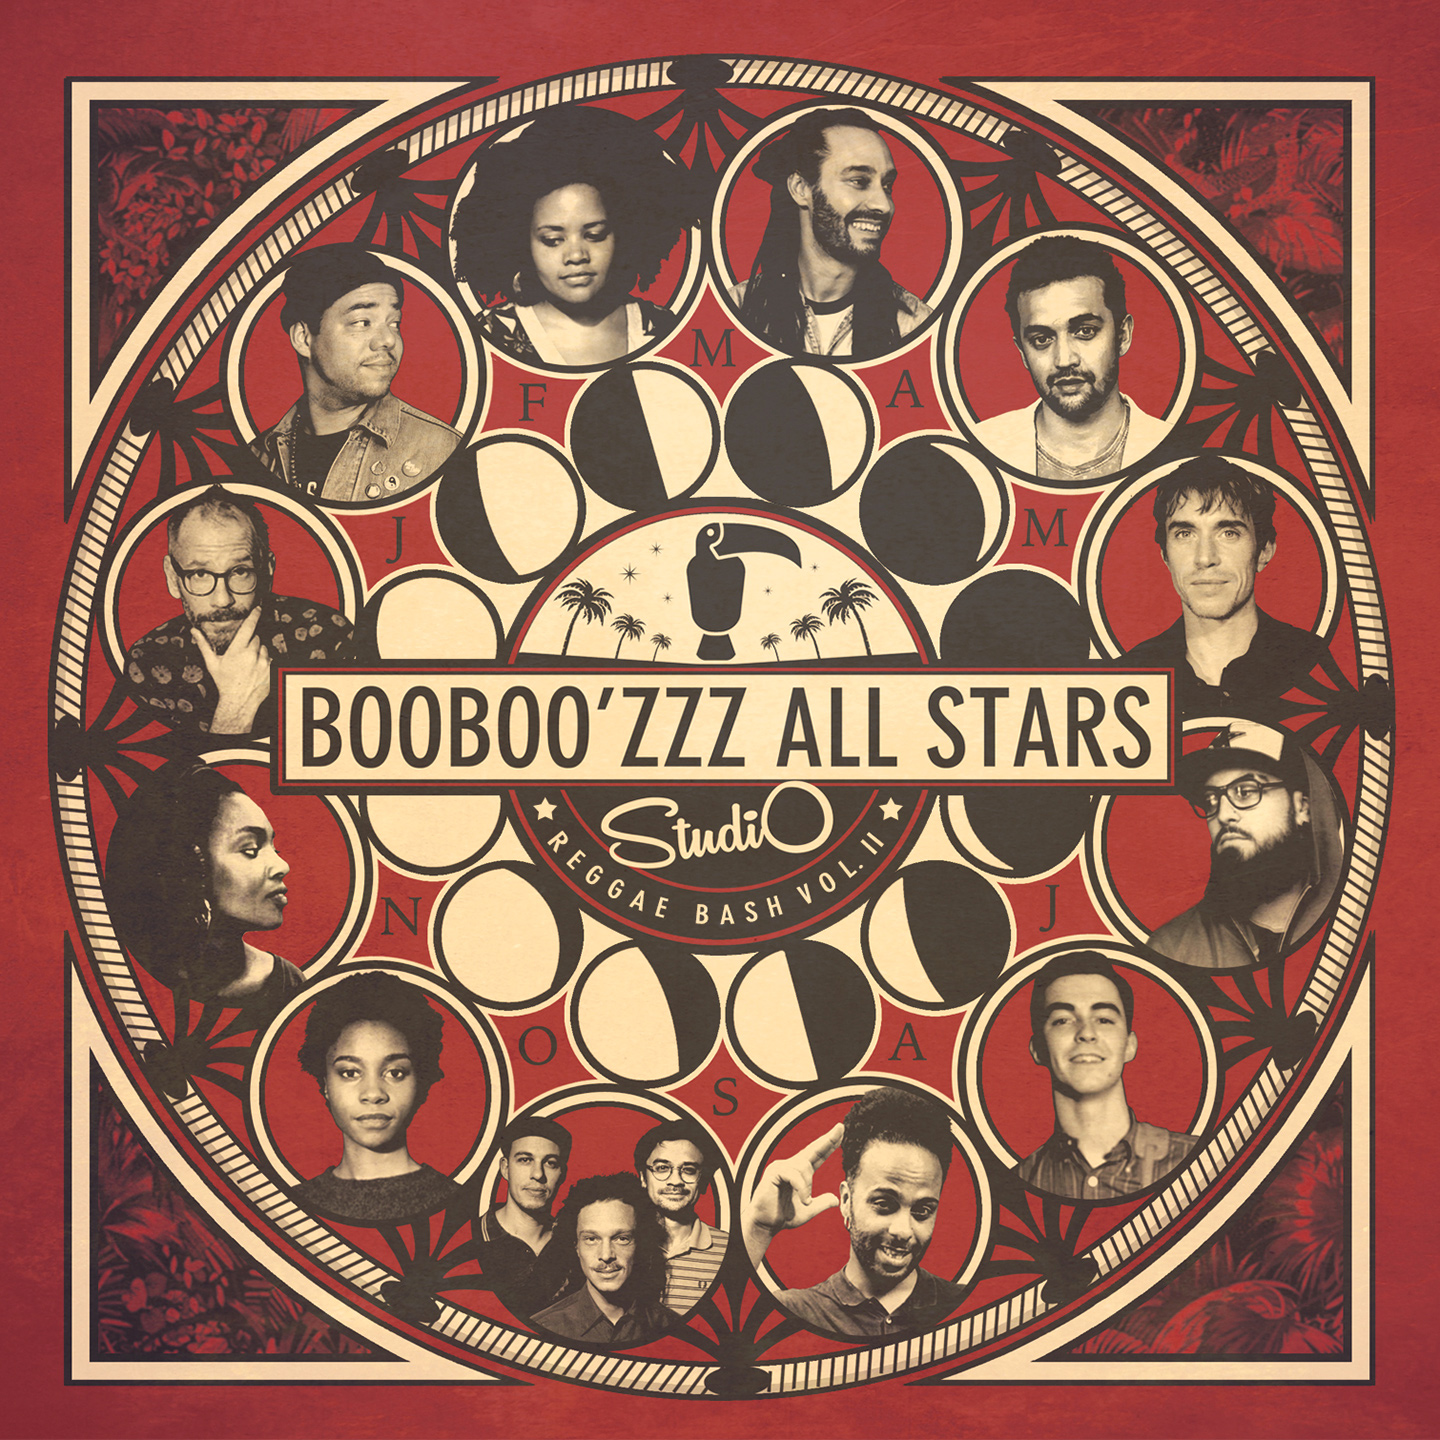 pochette-cover-artiste-Booboozzz All Stars-album-Born Again